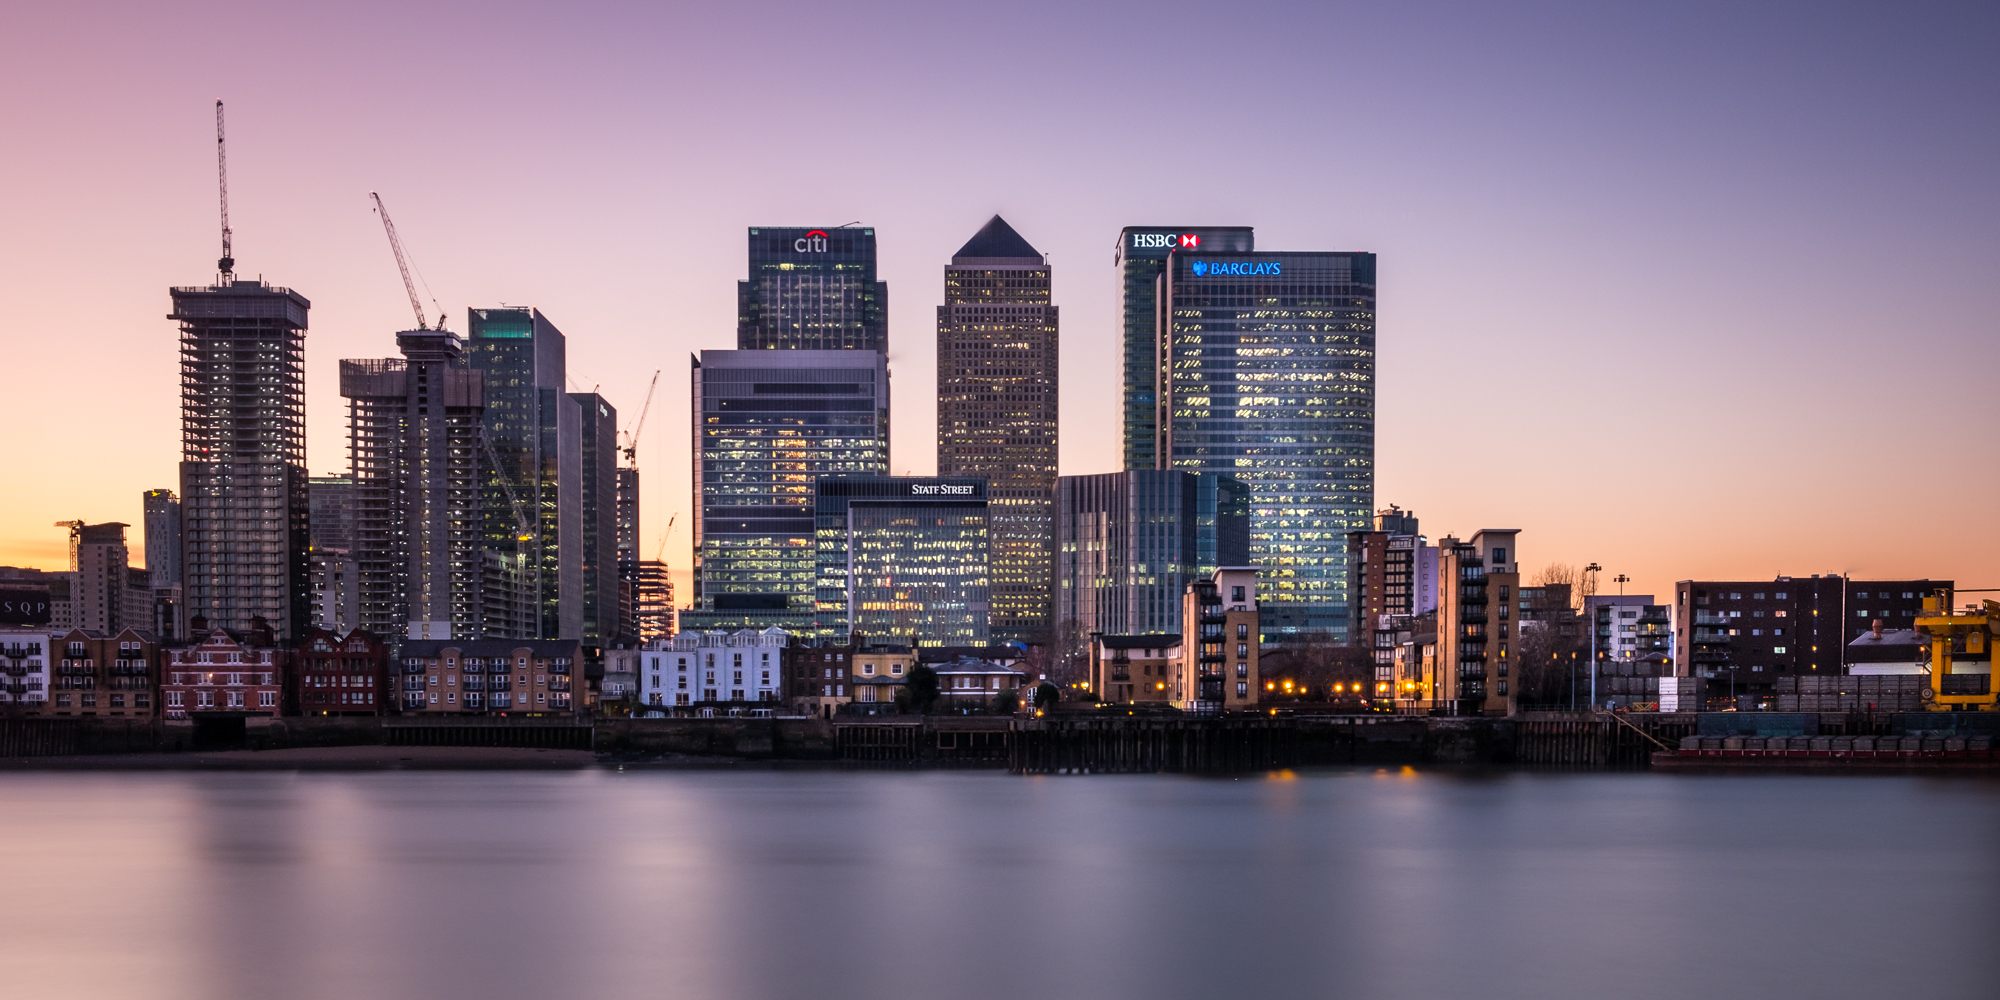 A photo of Canary Wharf at sunset taken by Trevor Sherwin